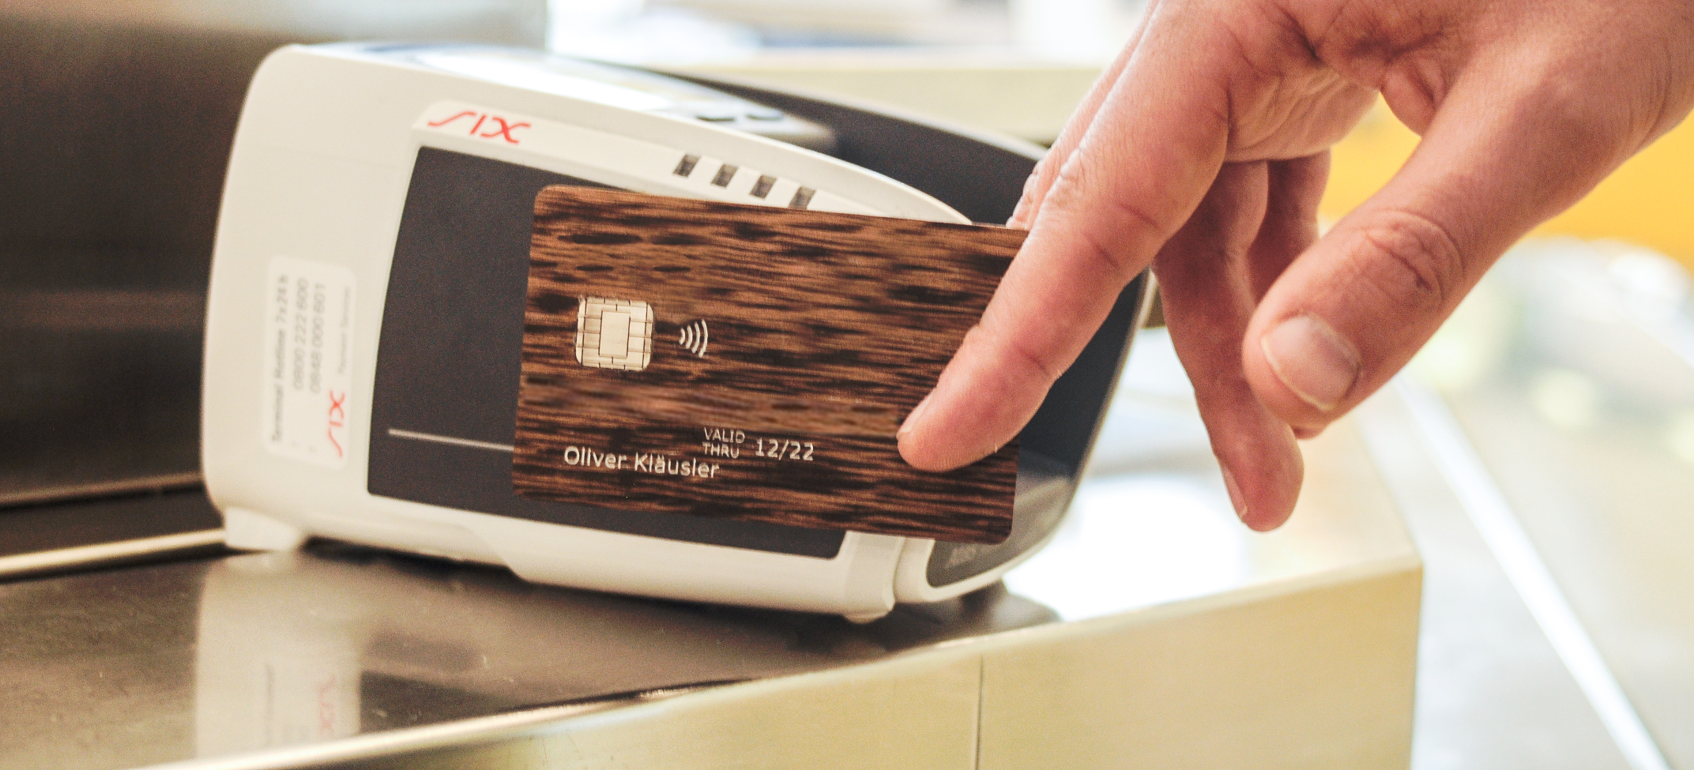 Wooden Smart Cards